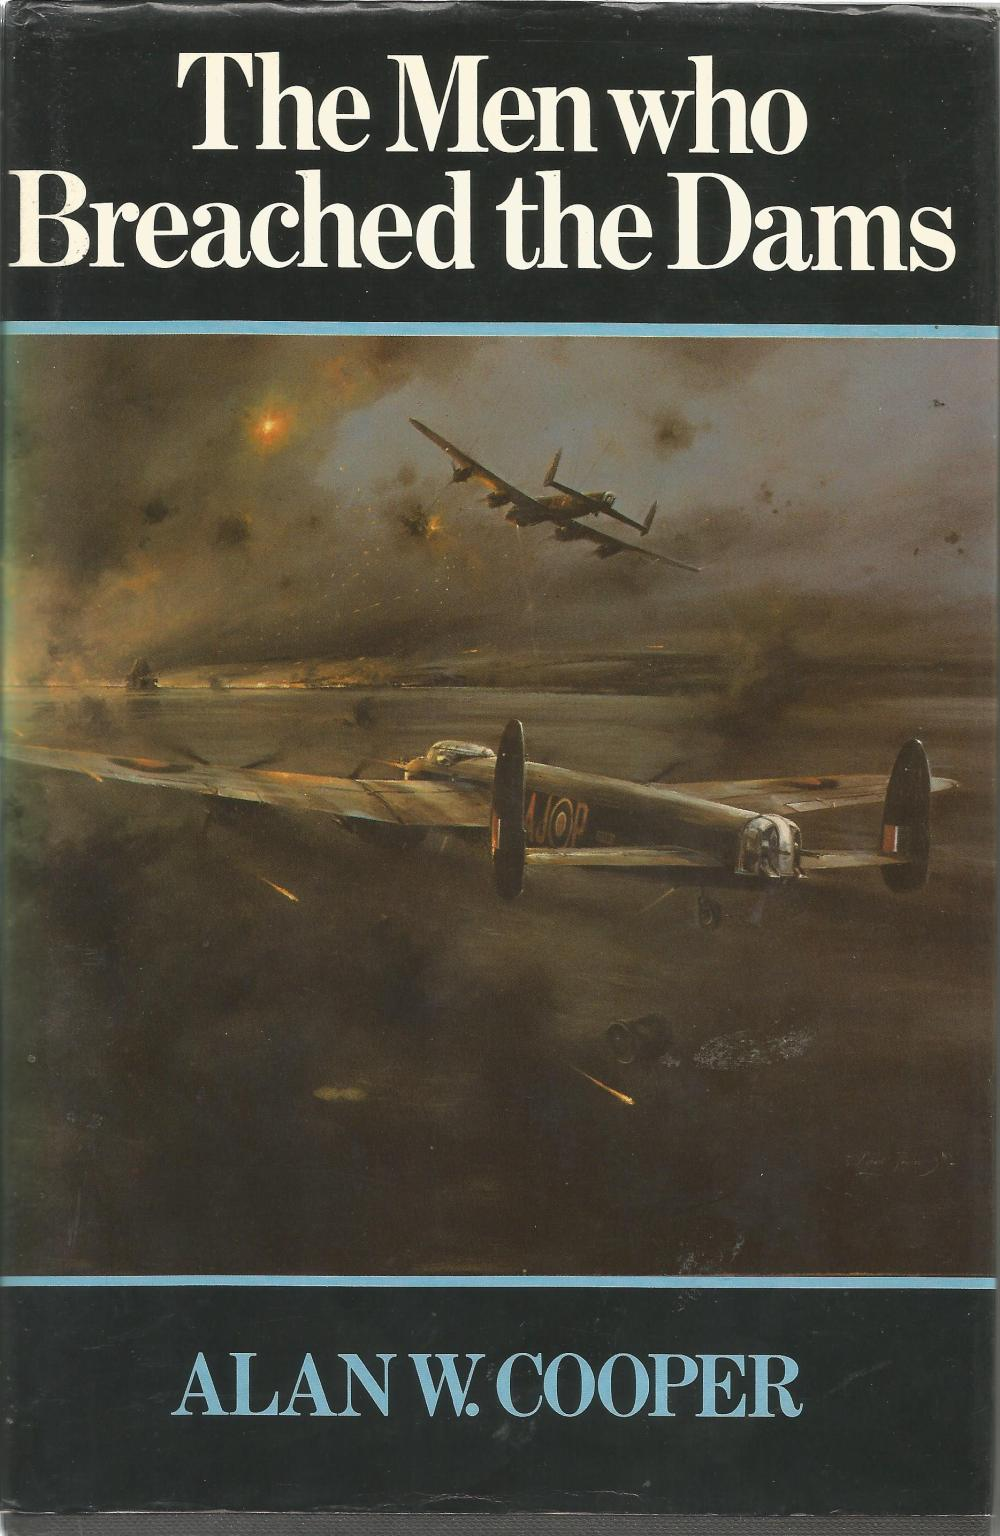 Dambusters unique Multisigned book. The Men who Breached the Dams by Alan W Cooper. Part of his